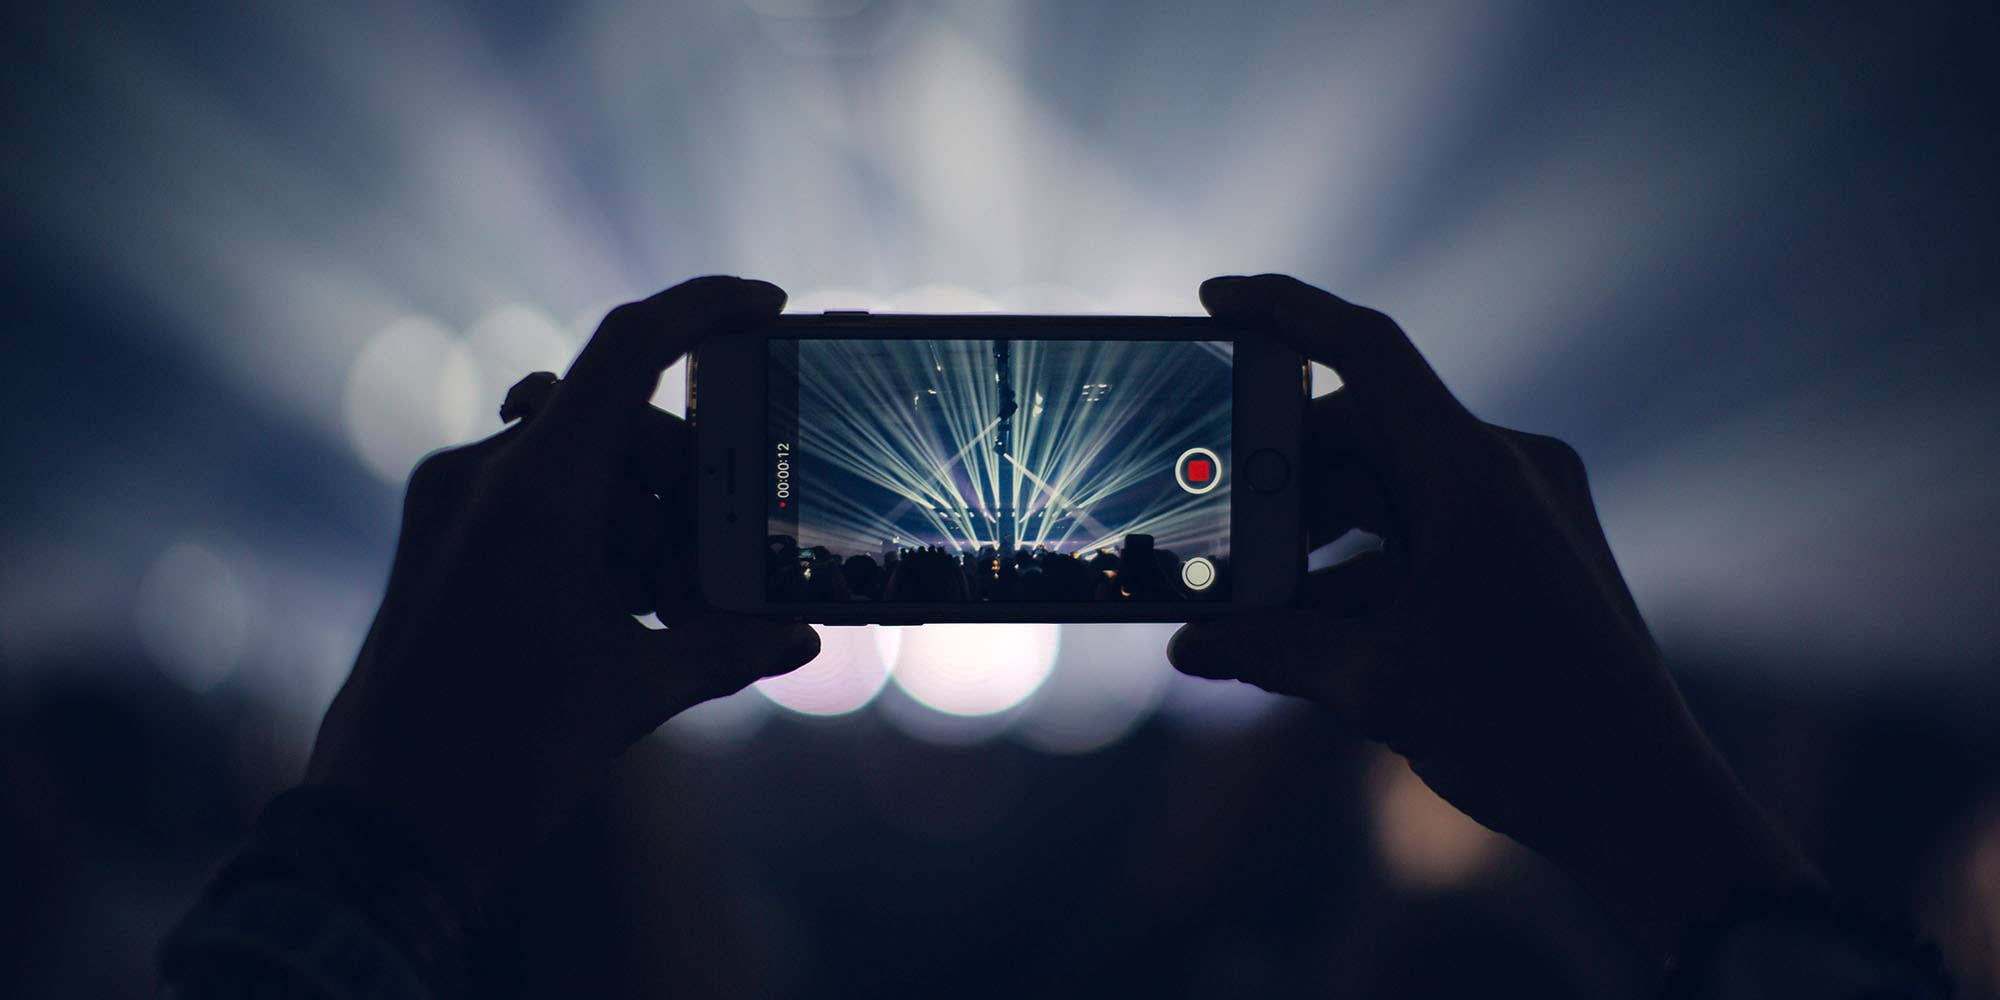 5 Tips For Shooting Video On Your Phone